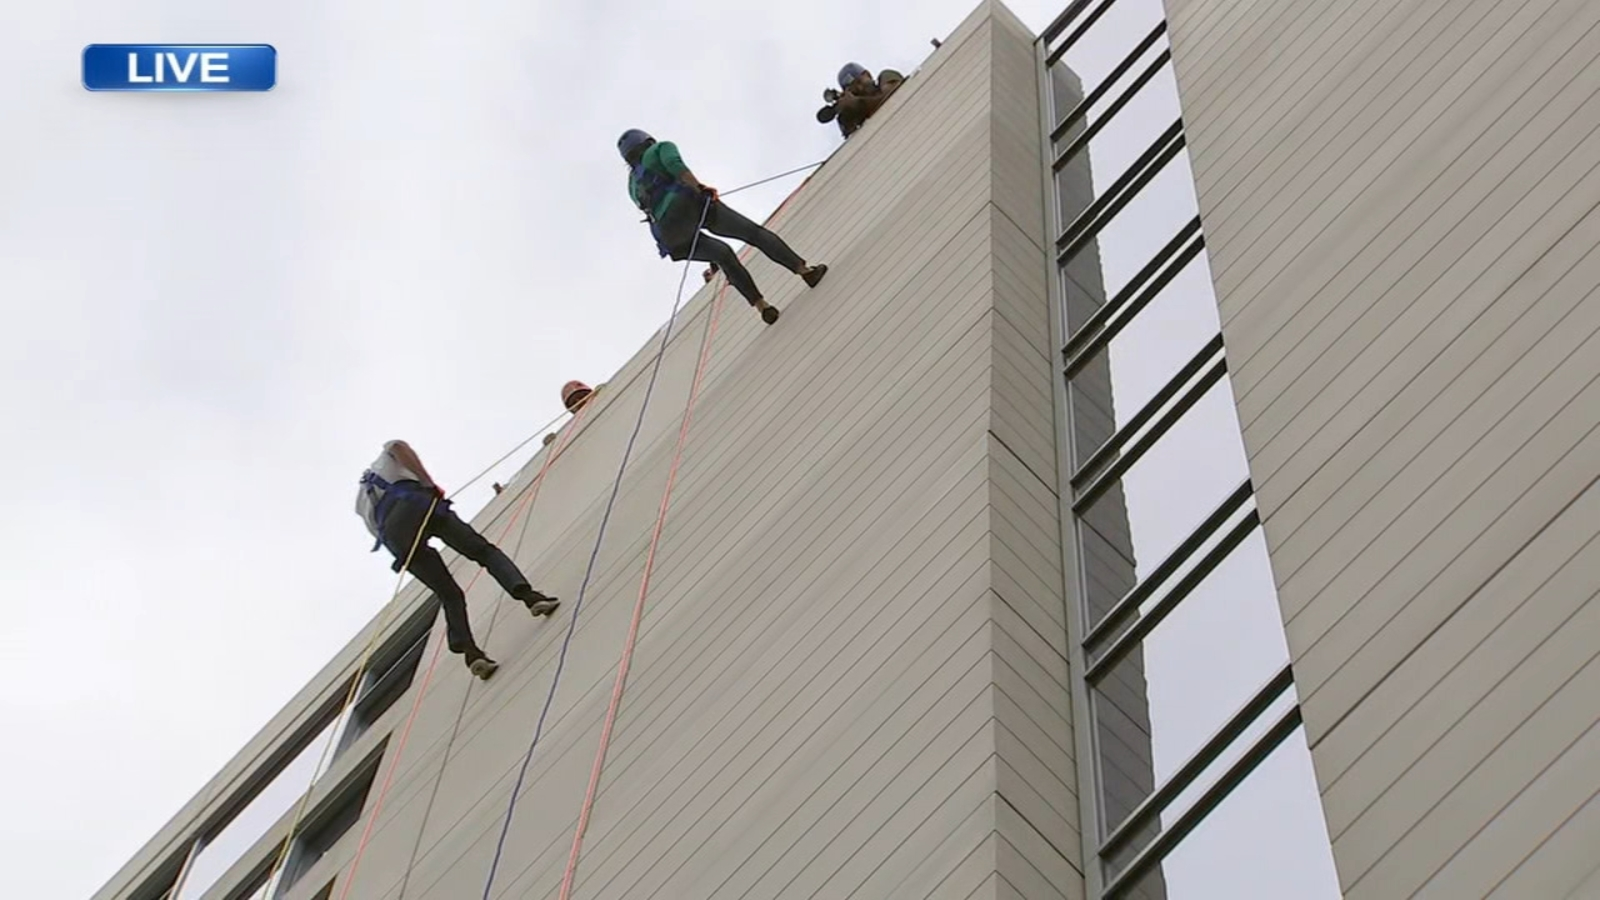 Military family members rappel off Naperville building to benefit troops, veterans